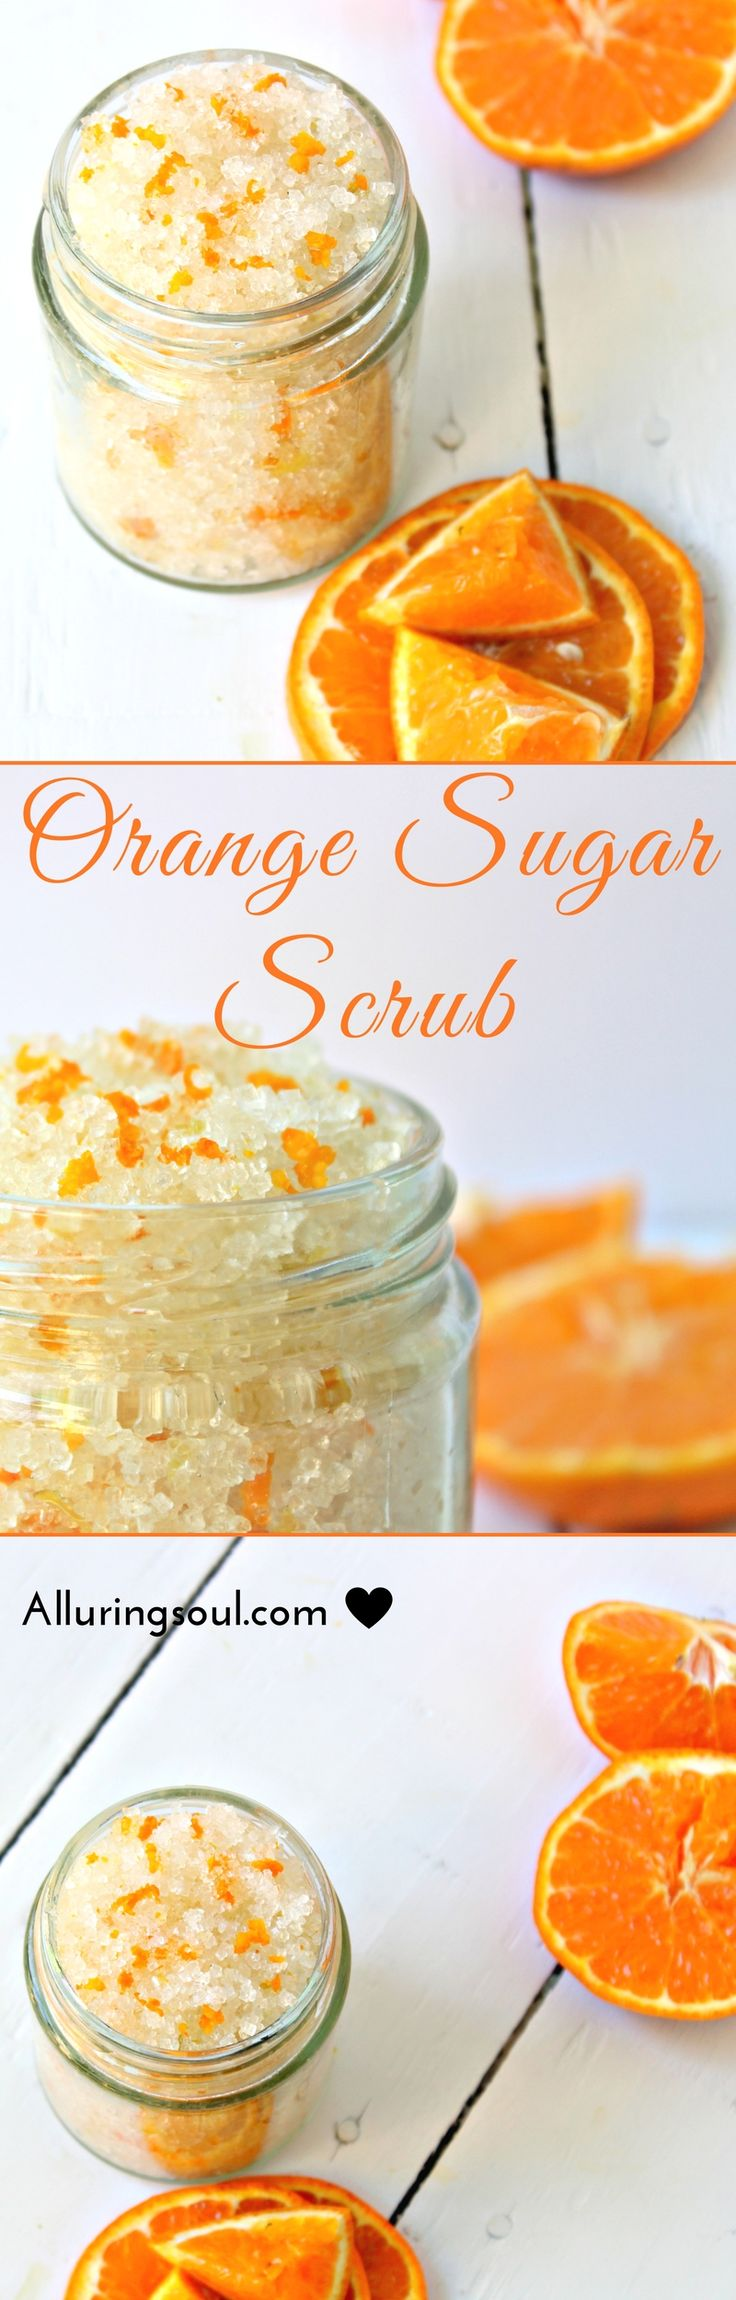 orange sugar scrub is the solution for getting rid of stubborn dark spots on skin. It removes gunk of our skin as it contains nourishing coconut oil and vitamin E oil which is perfect for our smooth skin.